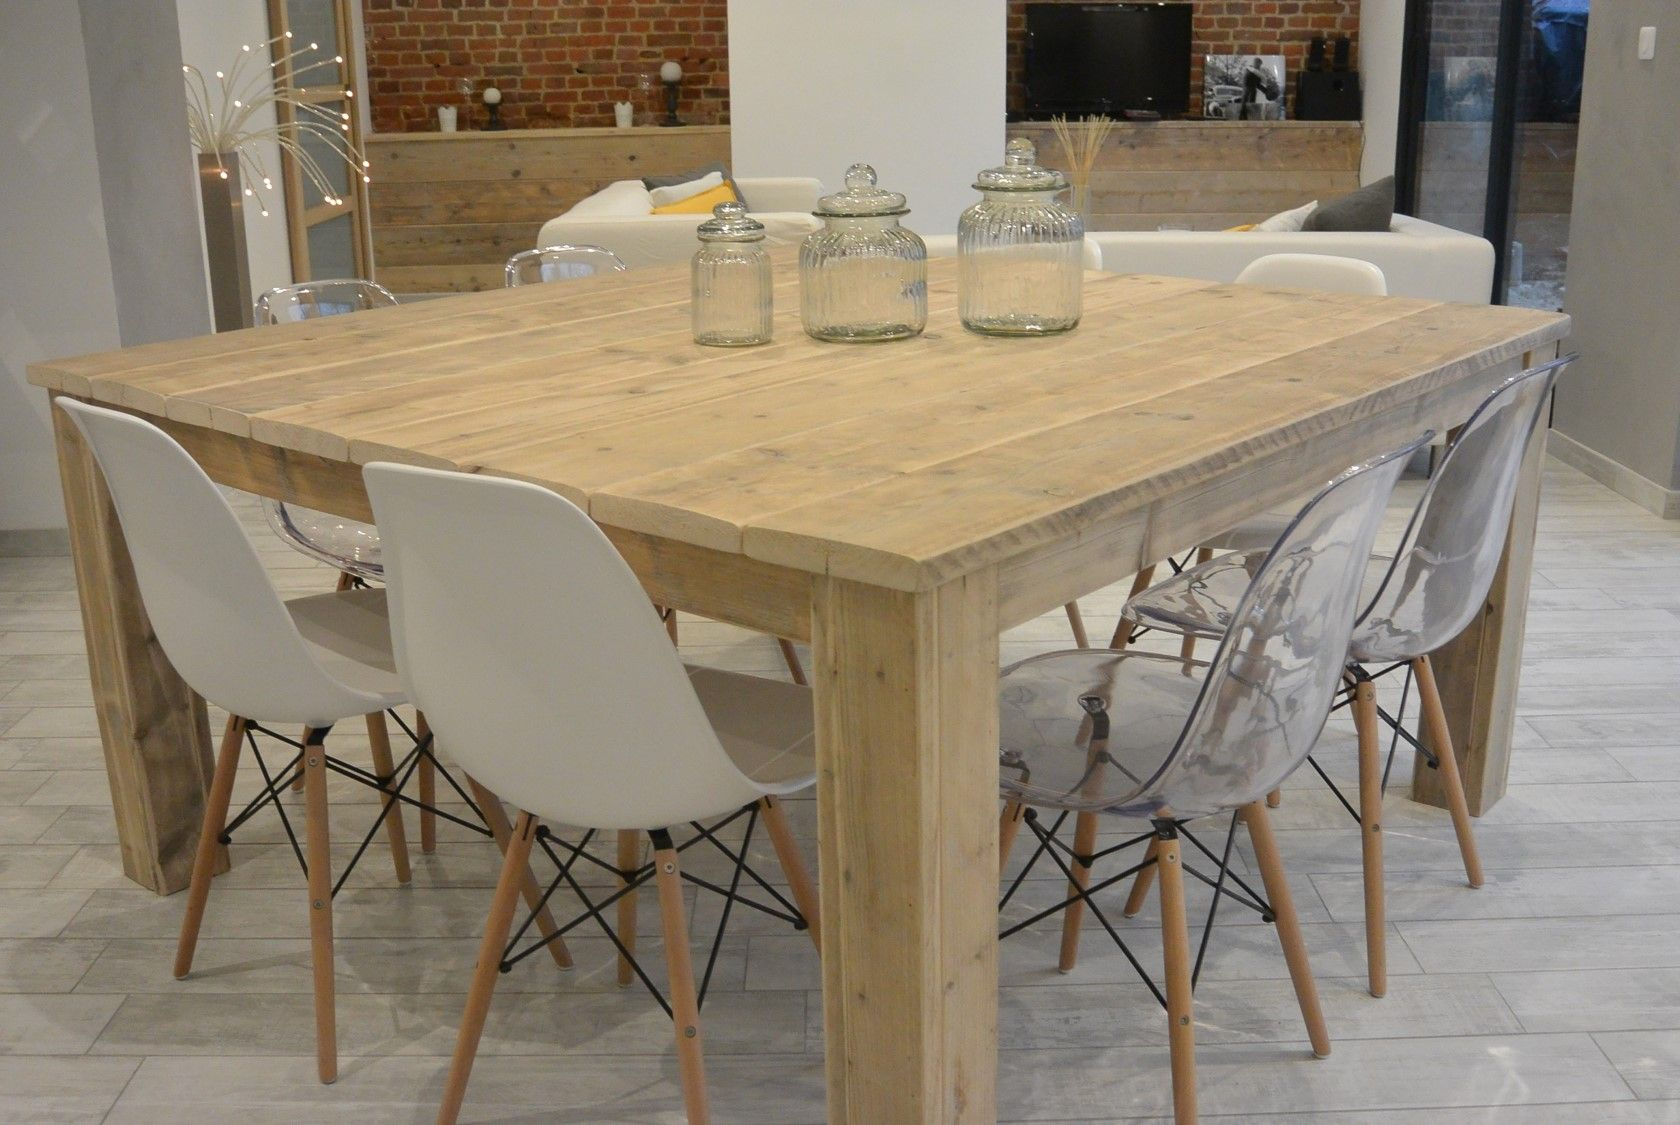 Table Bois Carré Table Carrée Pays Bois 160 Cm Dream Home Pinterest